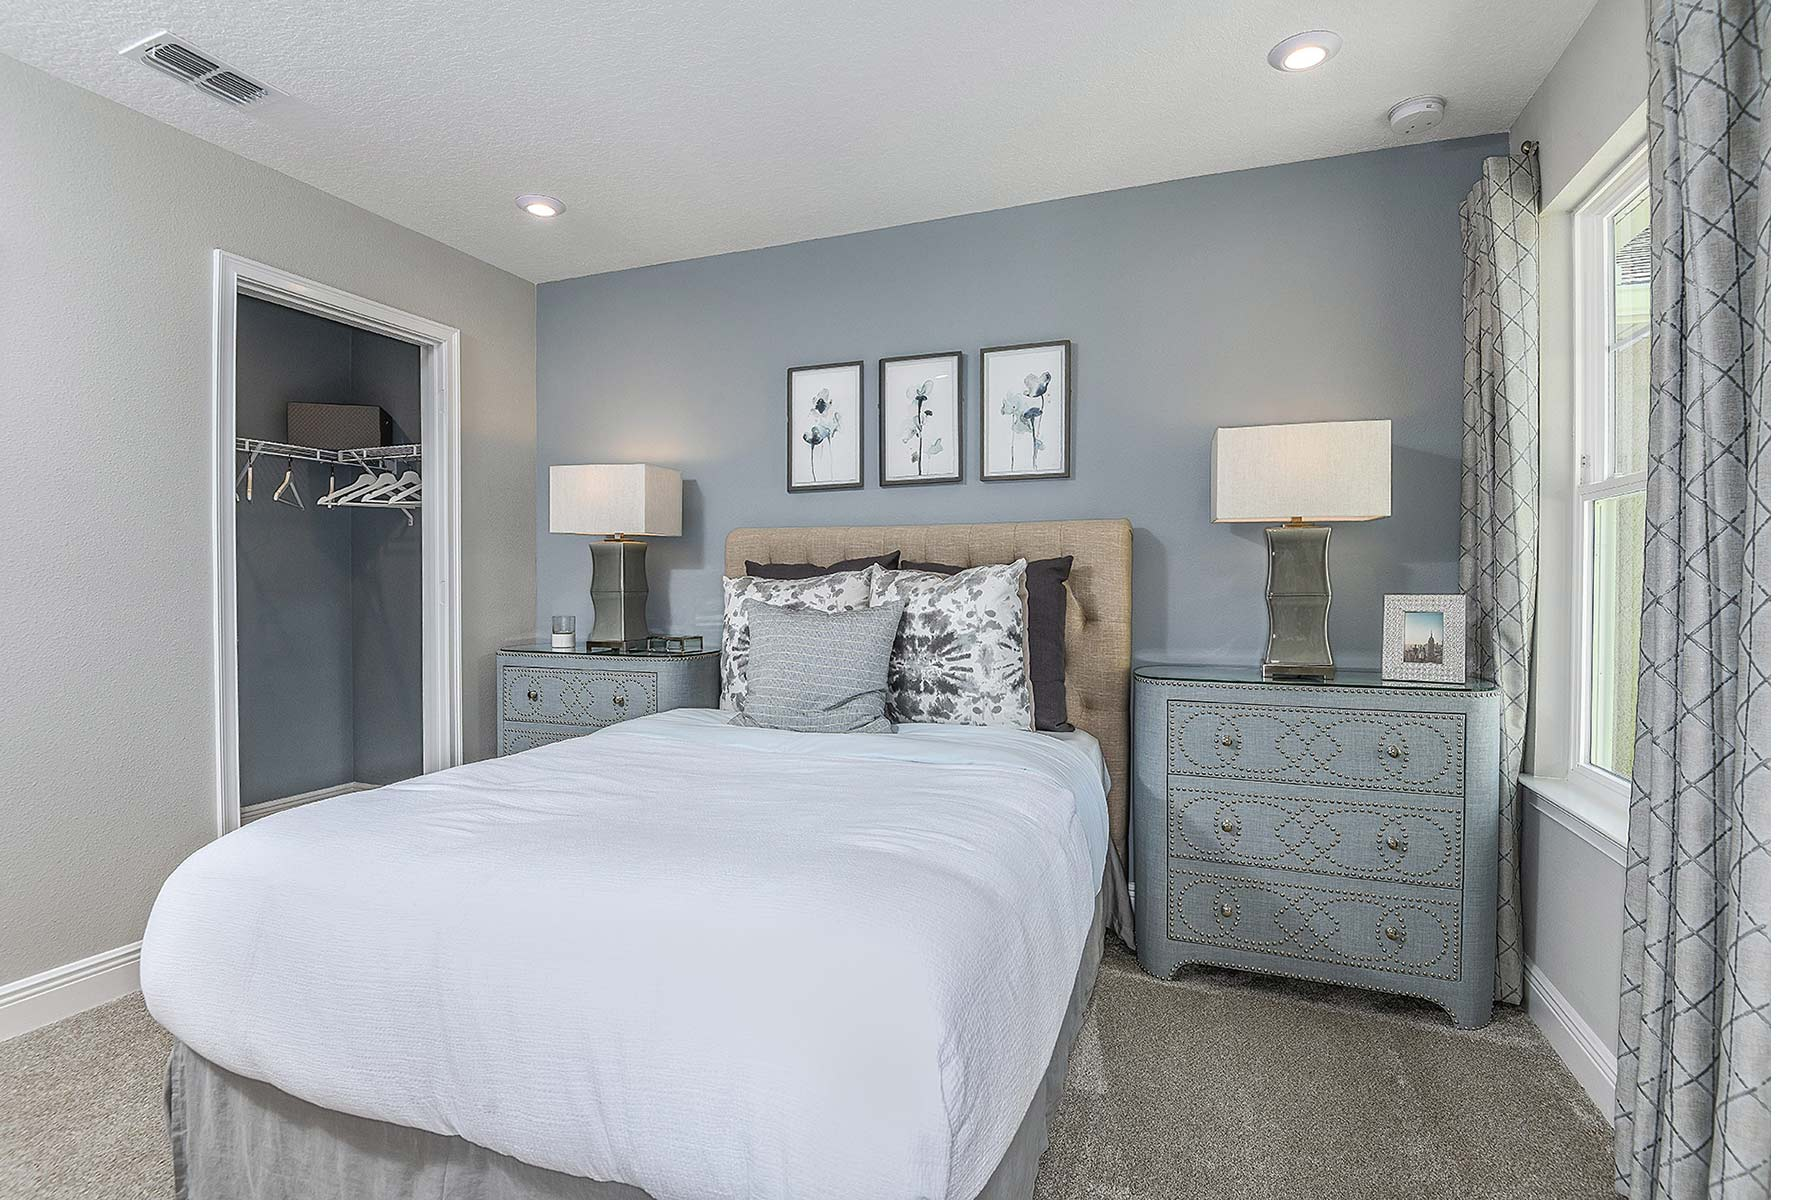 Ormond Plan Bedroom at Volanti in Wesley Chapel Florida by Mattamy Homes